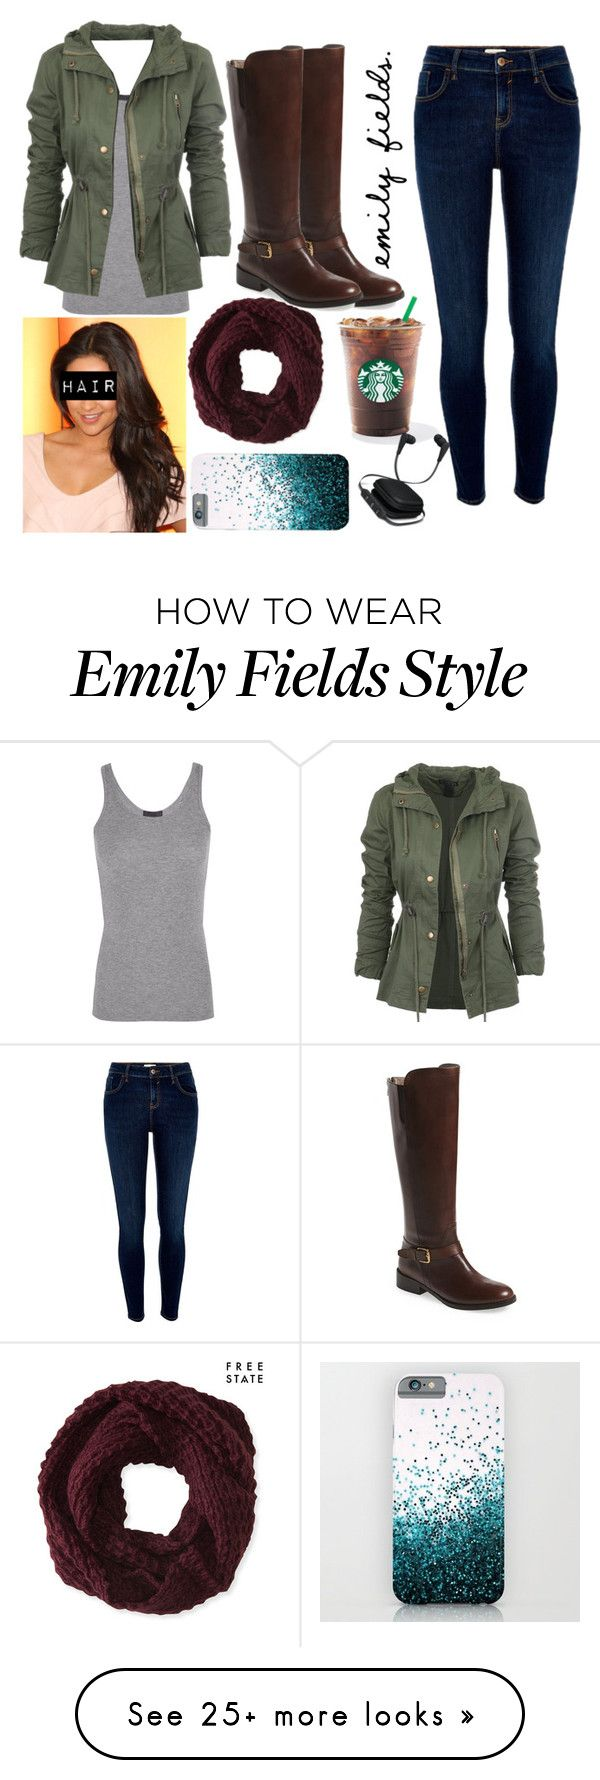 """Emily Fields"" by pandieandbffs on Polyvore featuring ATM by Anthony Thomas Melillo, River Island, Aéropostale, Bella Vita and iWorld"